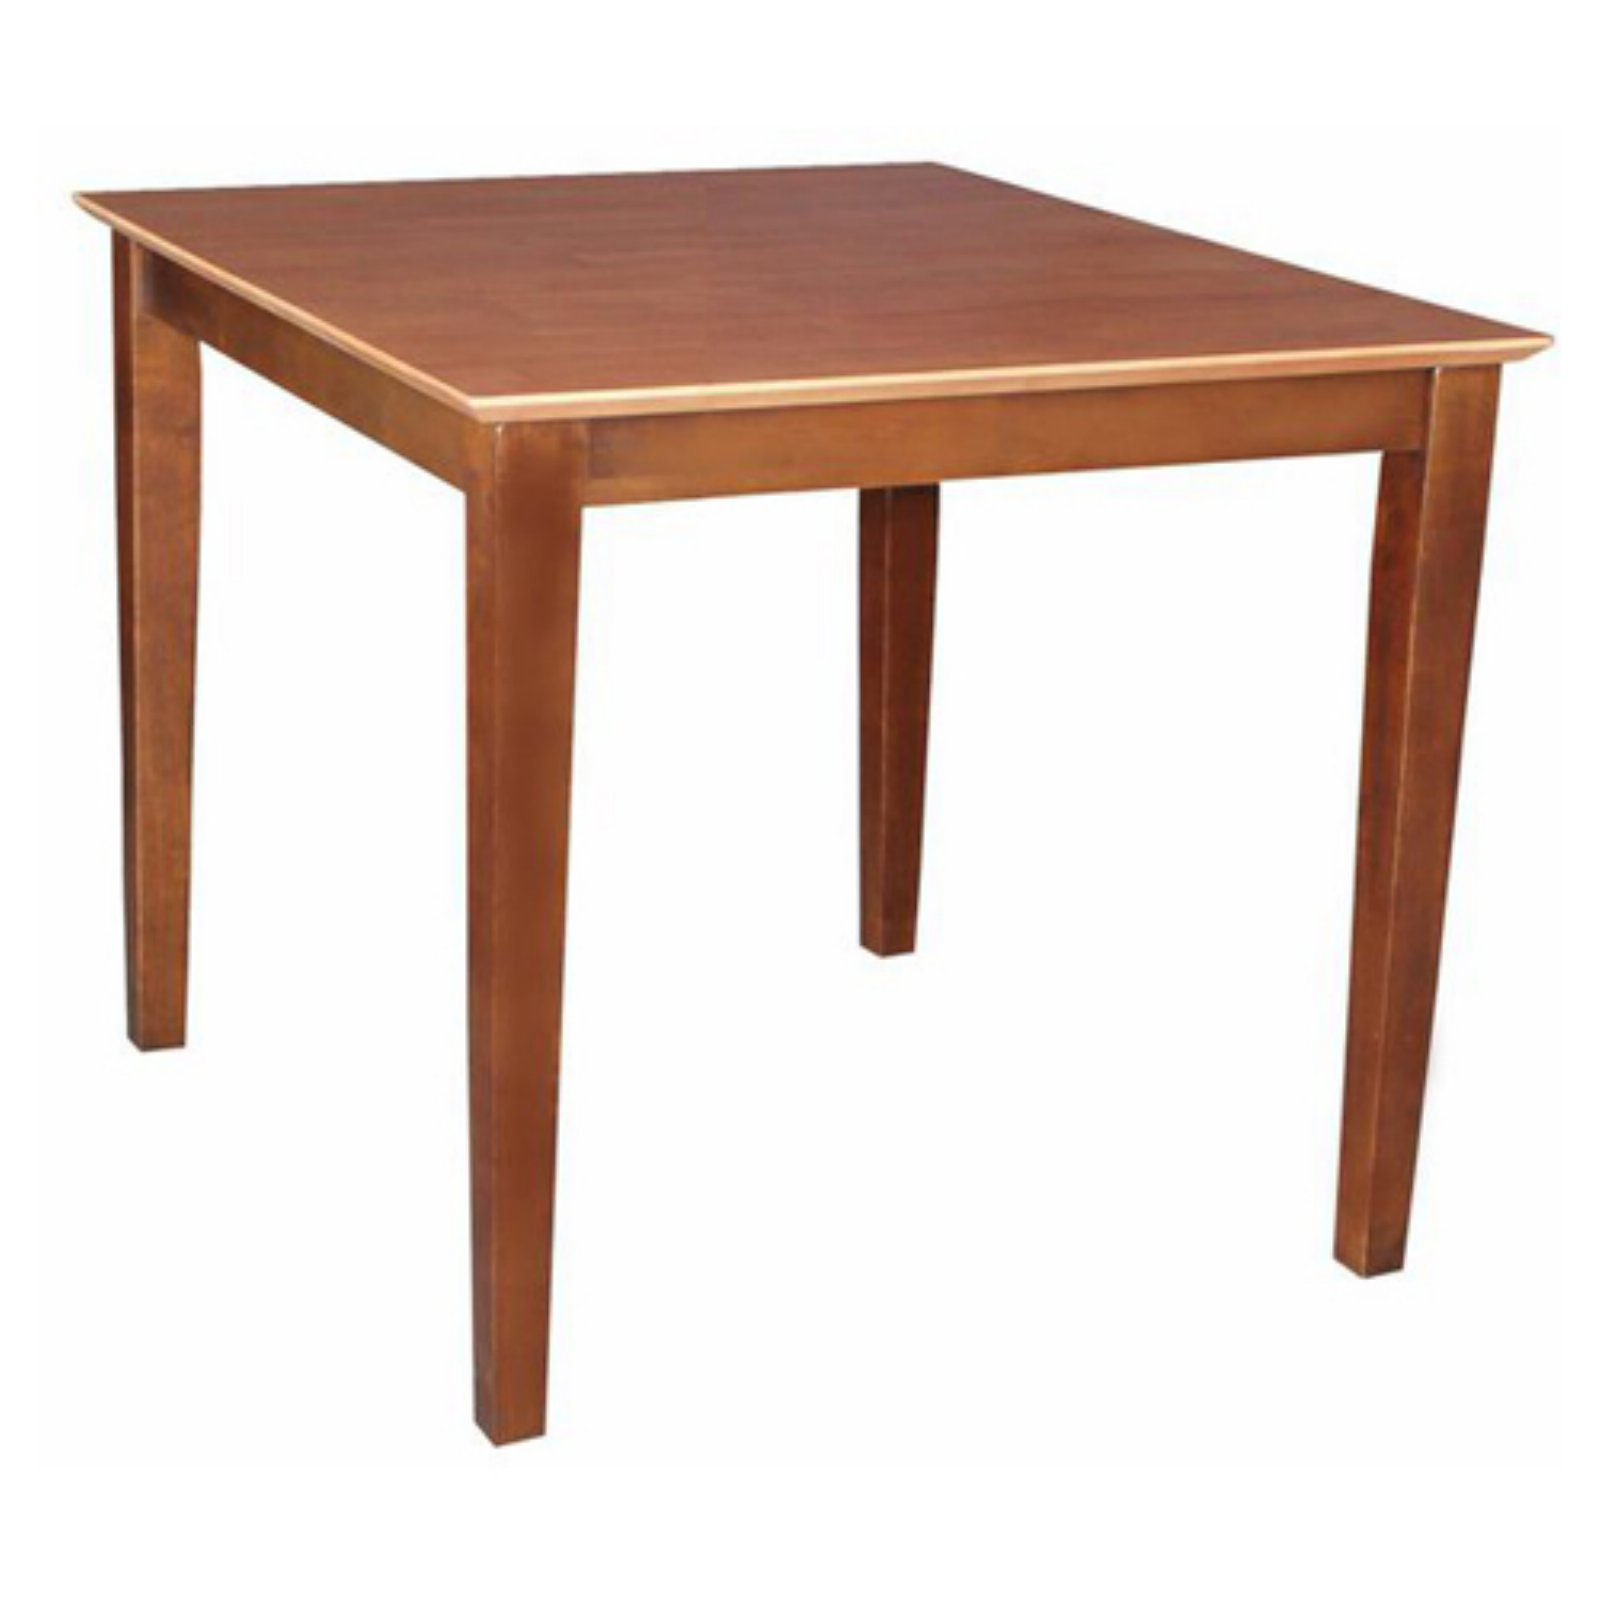 Solid Wood Top Table, Shaker Legs